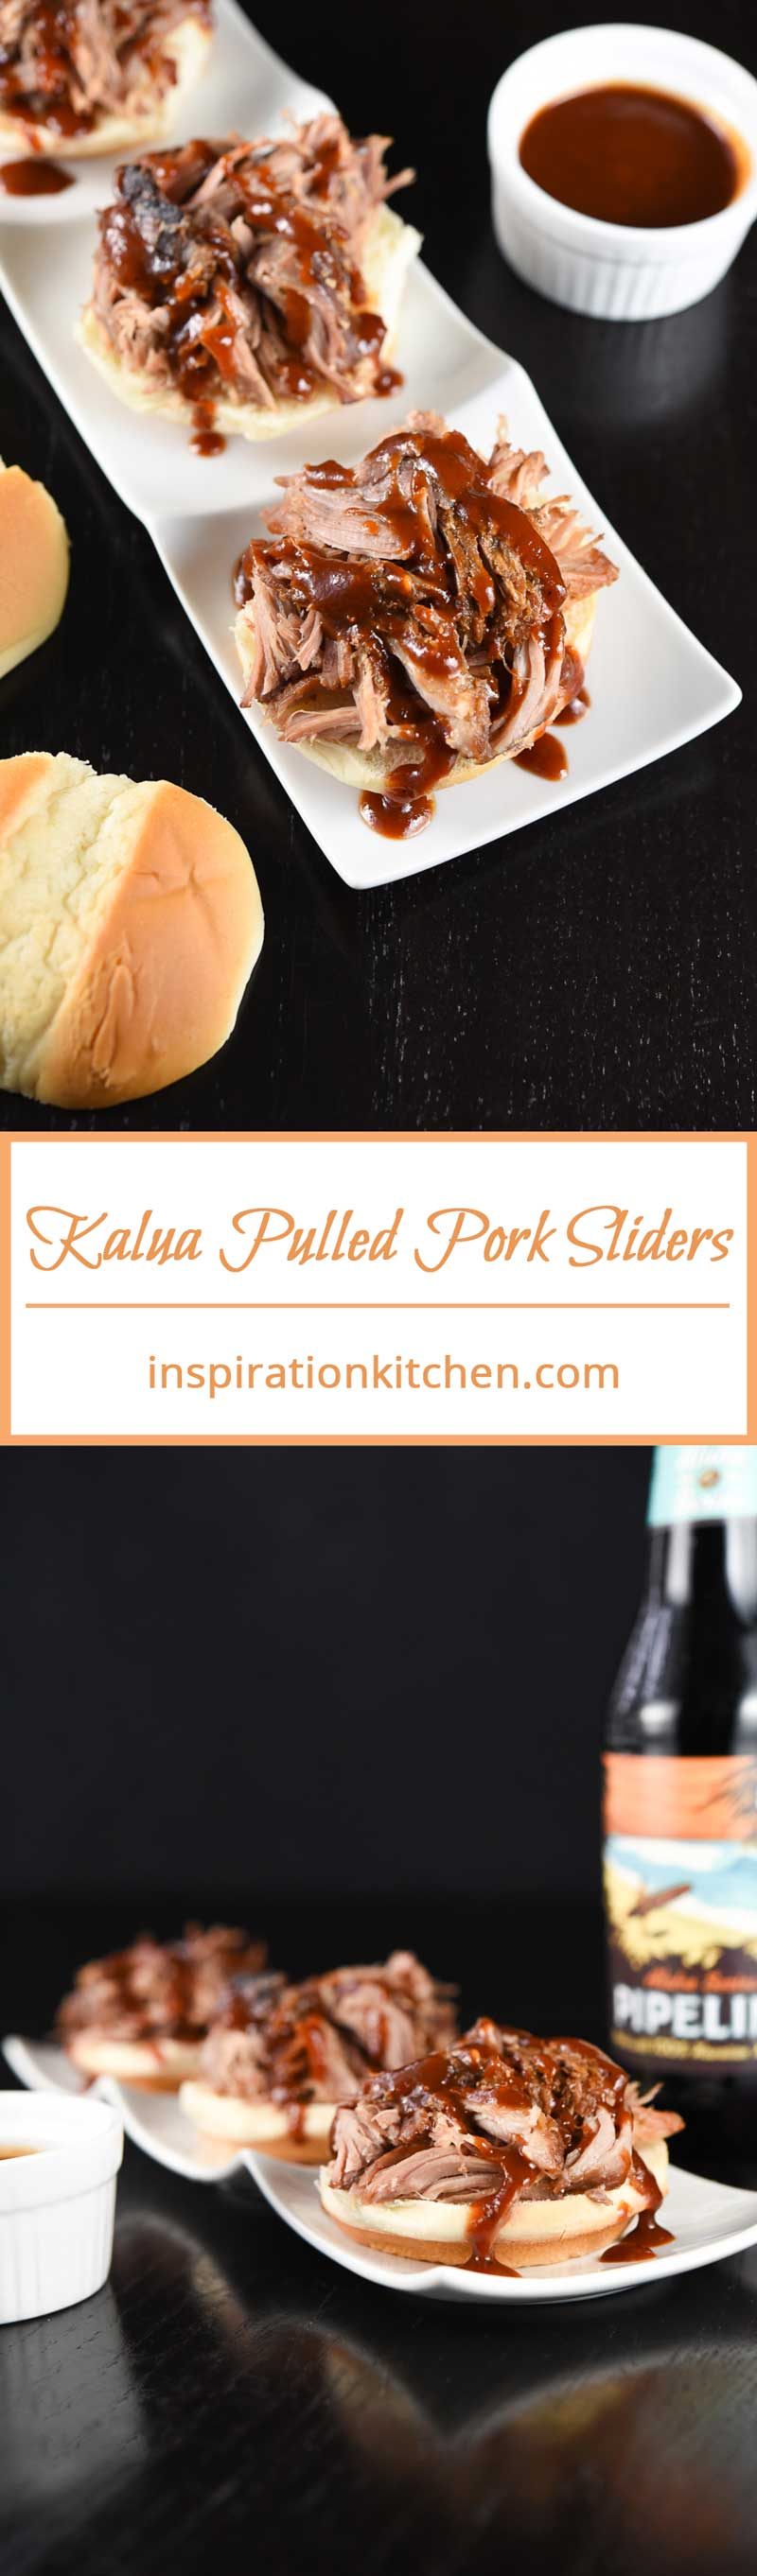 Kalua Pulled Pork Sliders | Inspiration Kitchen